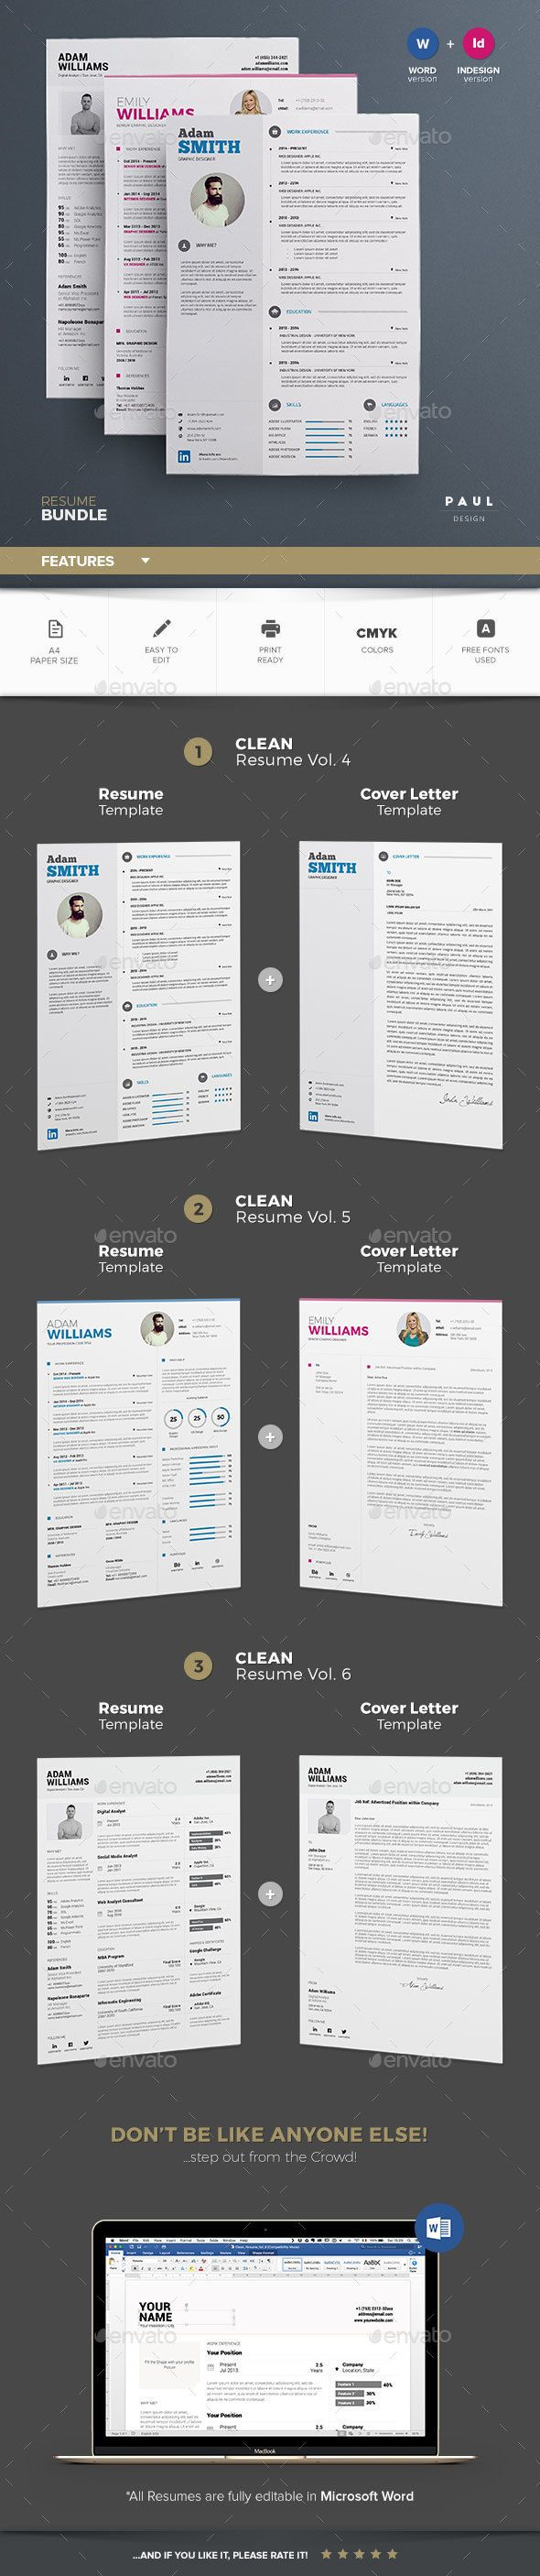 Best Resume Templates Design Bump Images On   Resume